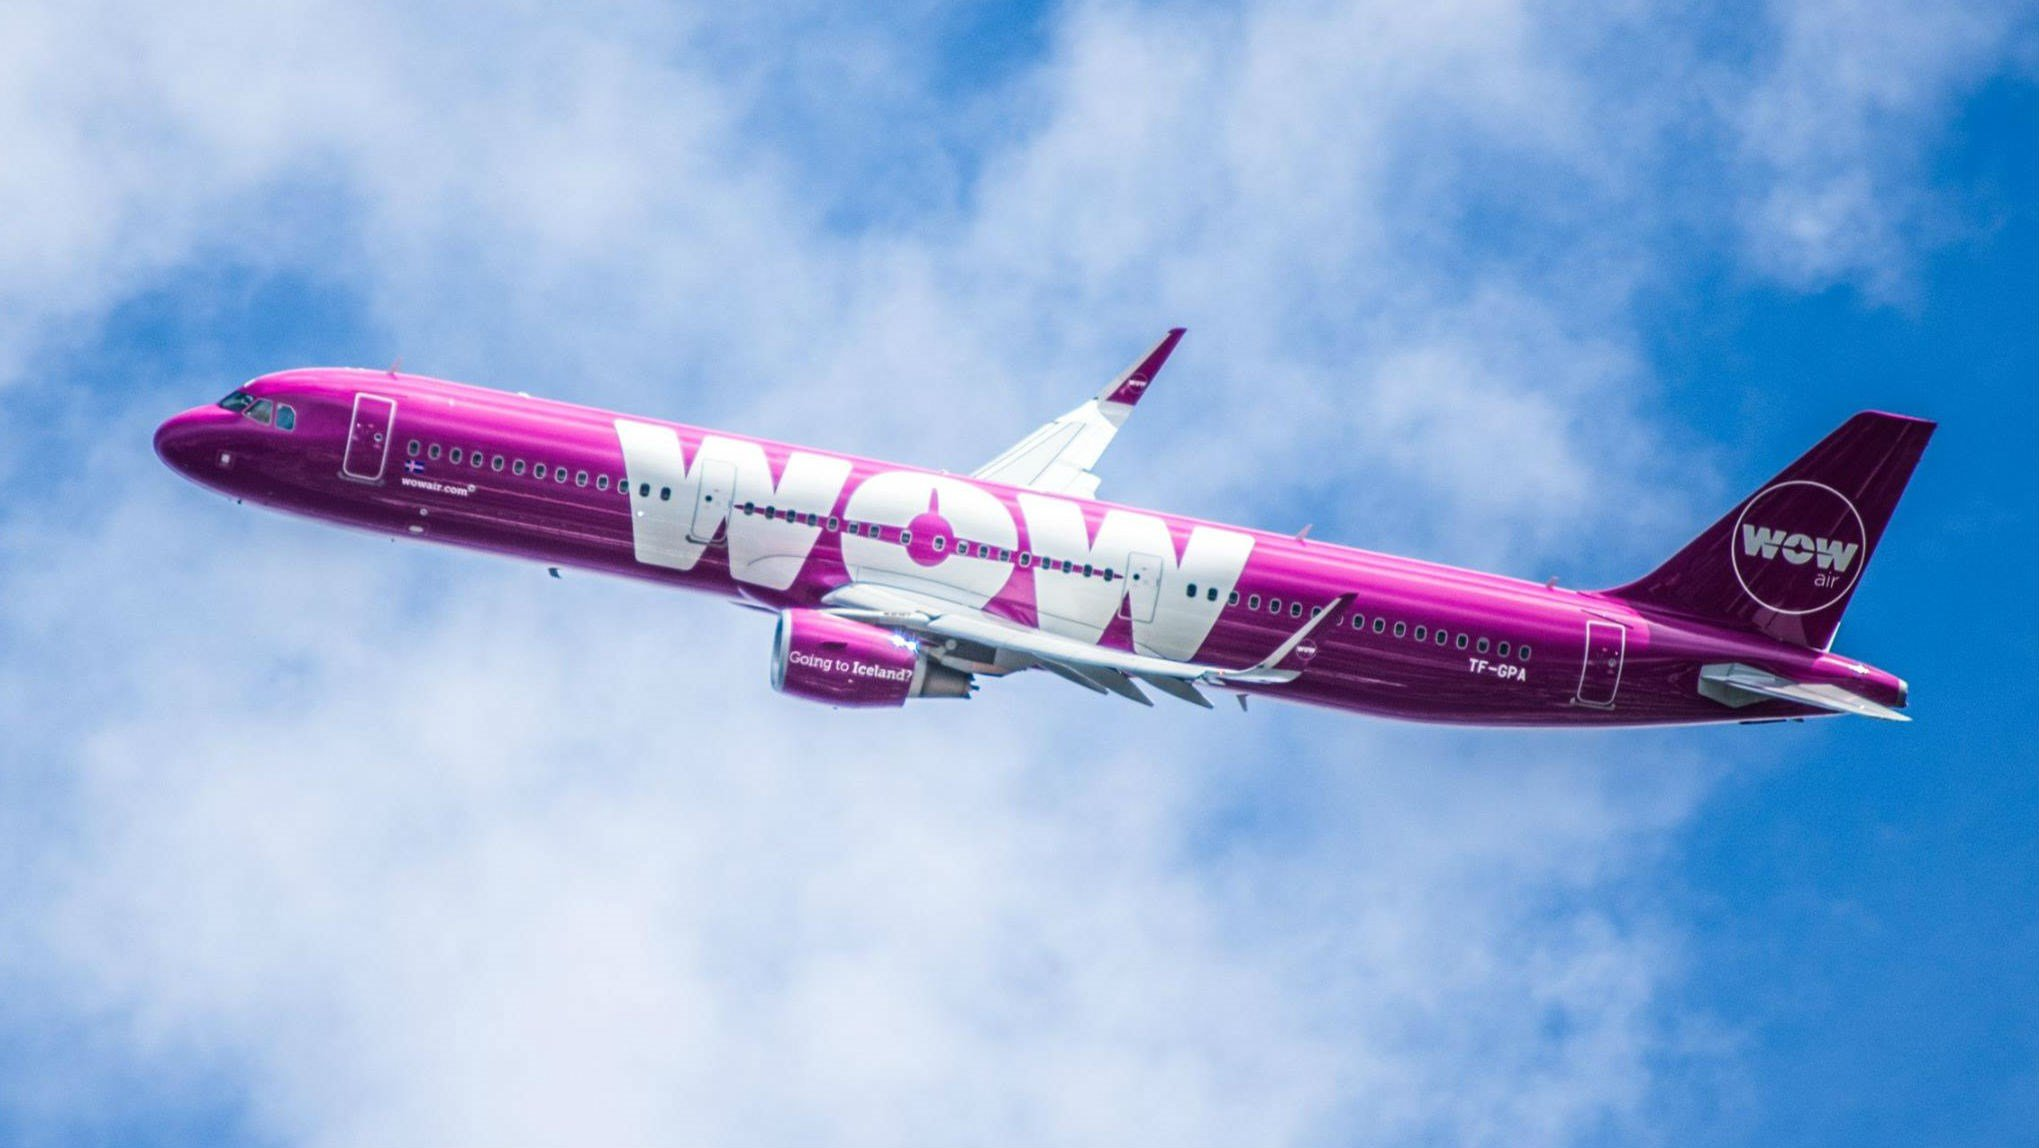 WOW air Facebook page